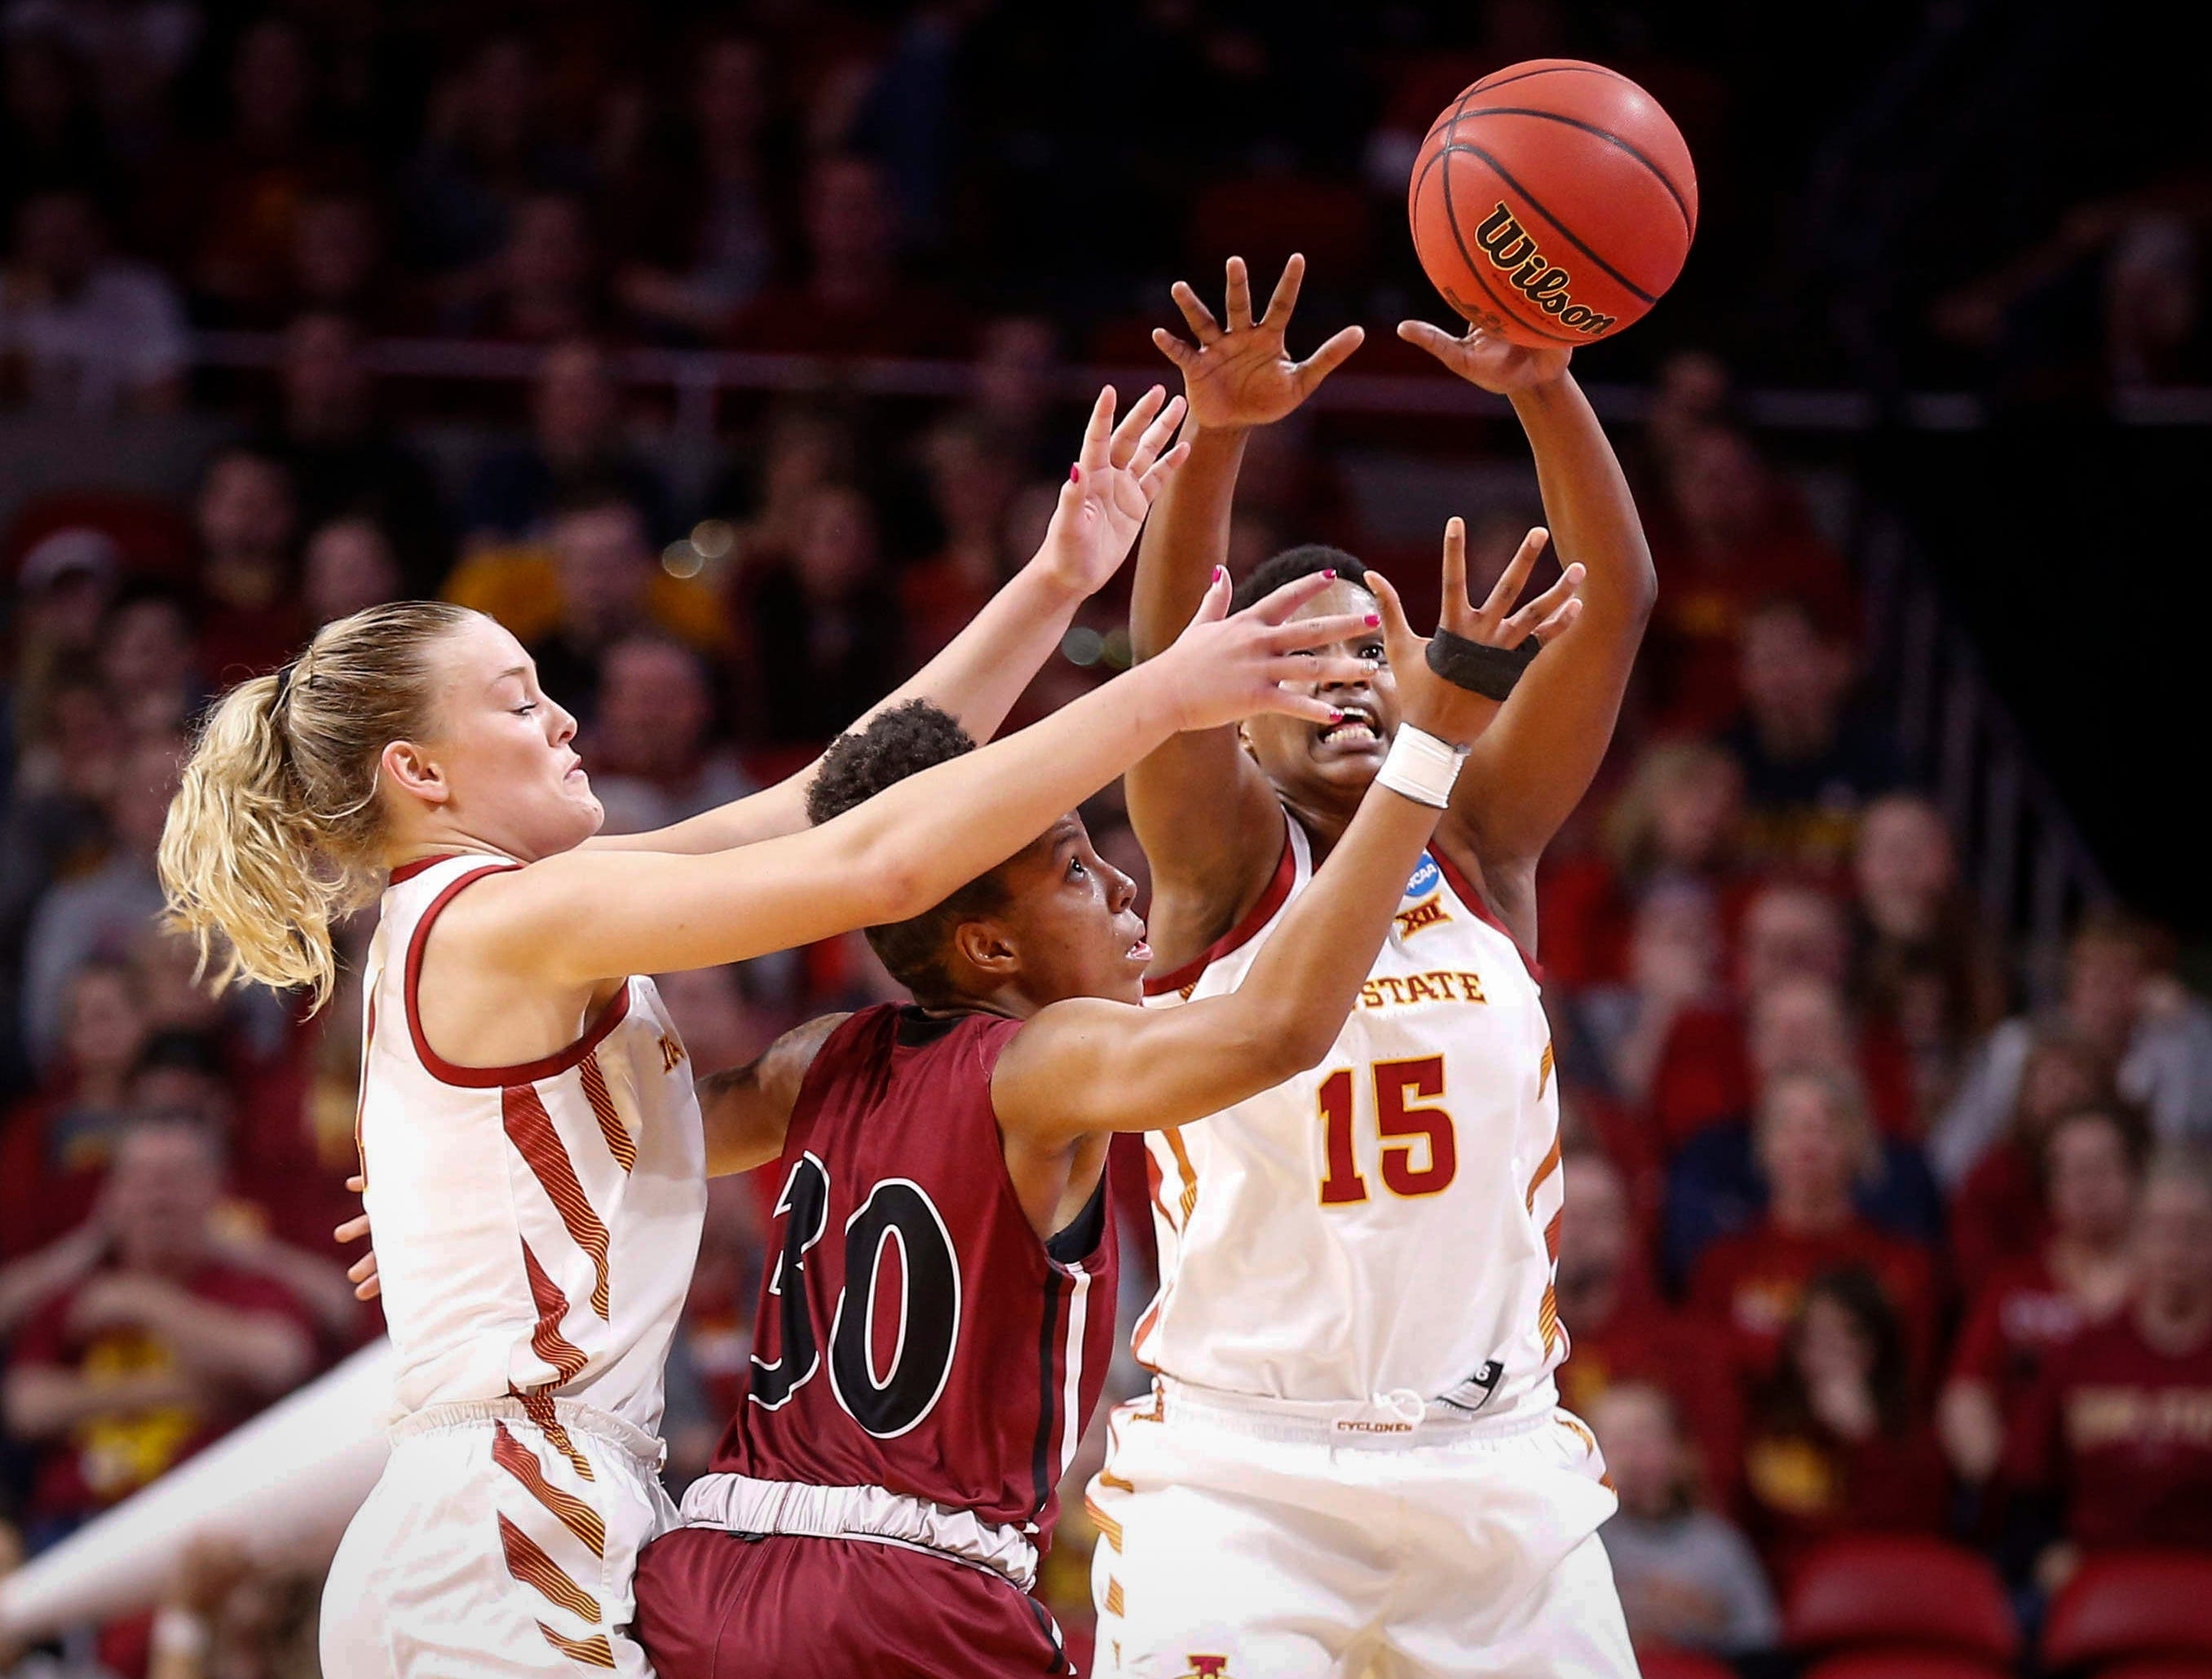 Iowa State's Ashley Joens, left, and Ines Nezerwa play tough defense and force the ball away from New Mexico State junior Gia Pack in the third quarter on Saturday, March 23, 2019, at Hilton Coliseum in Ames.